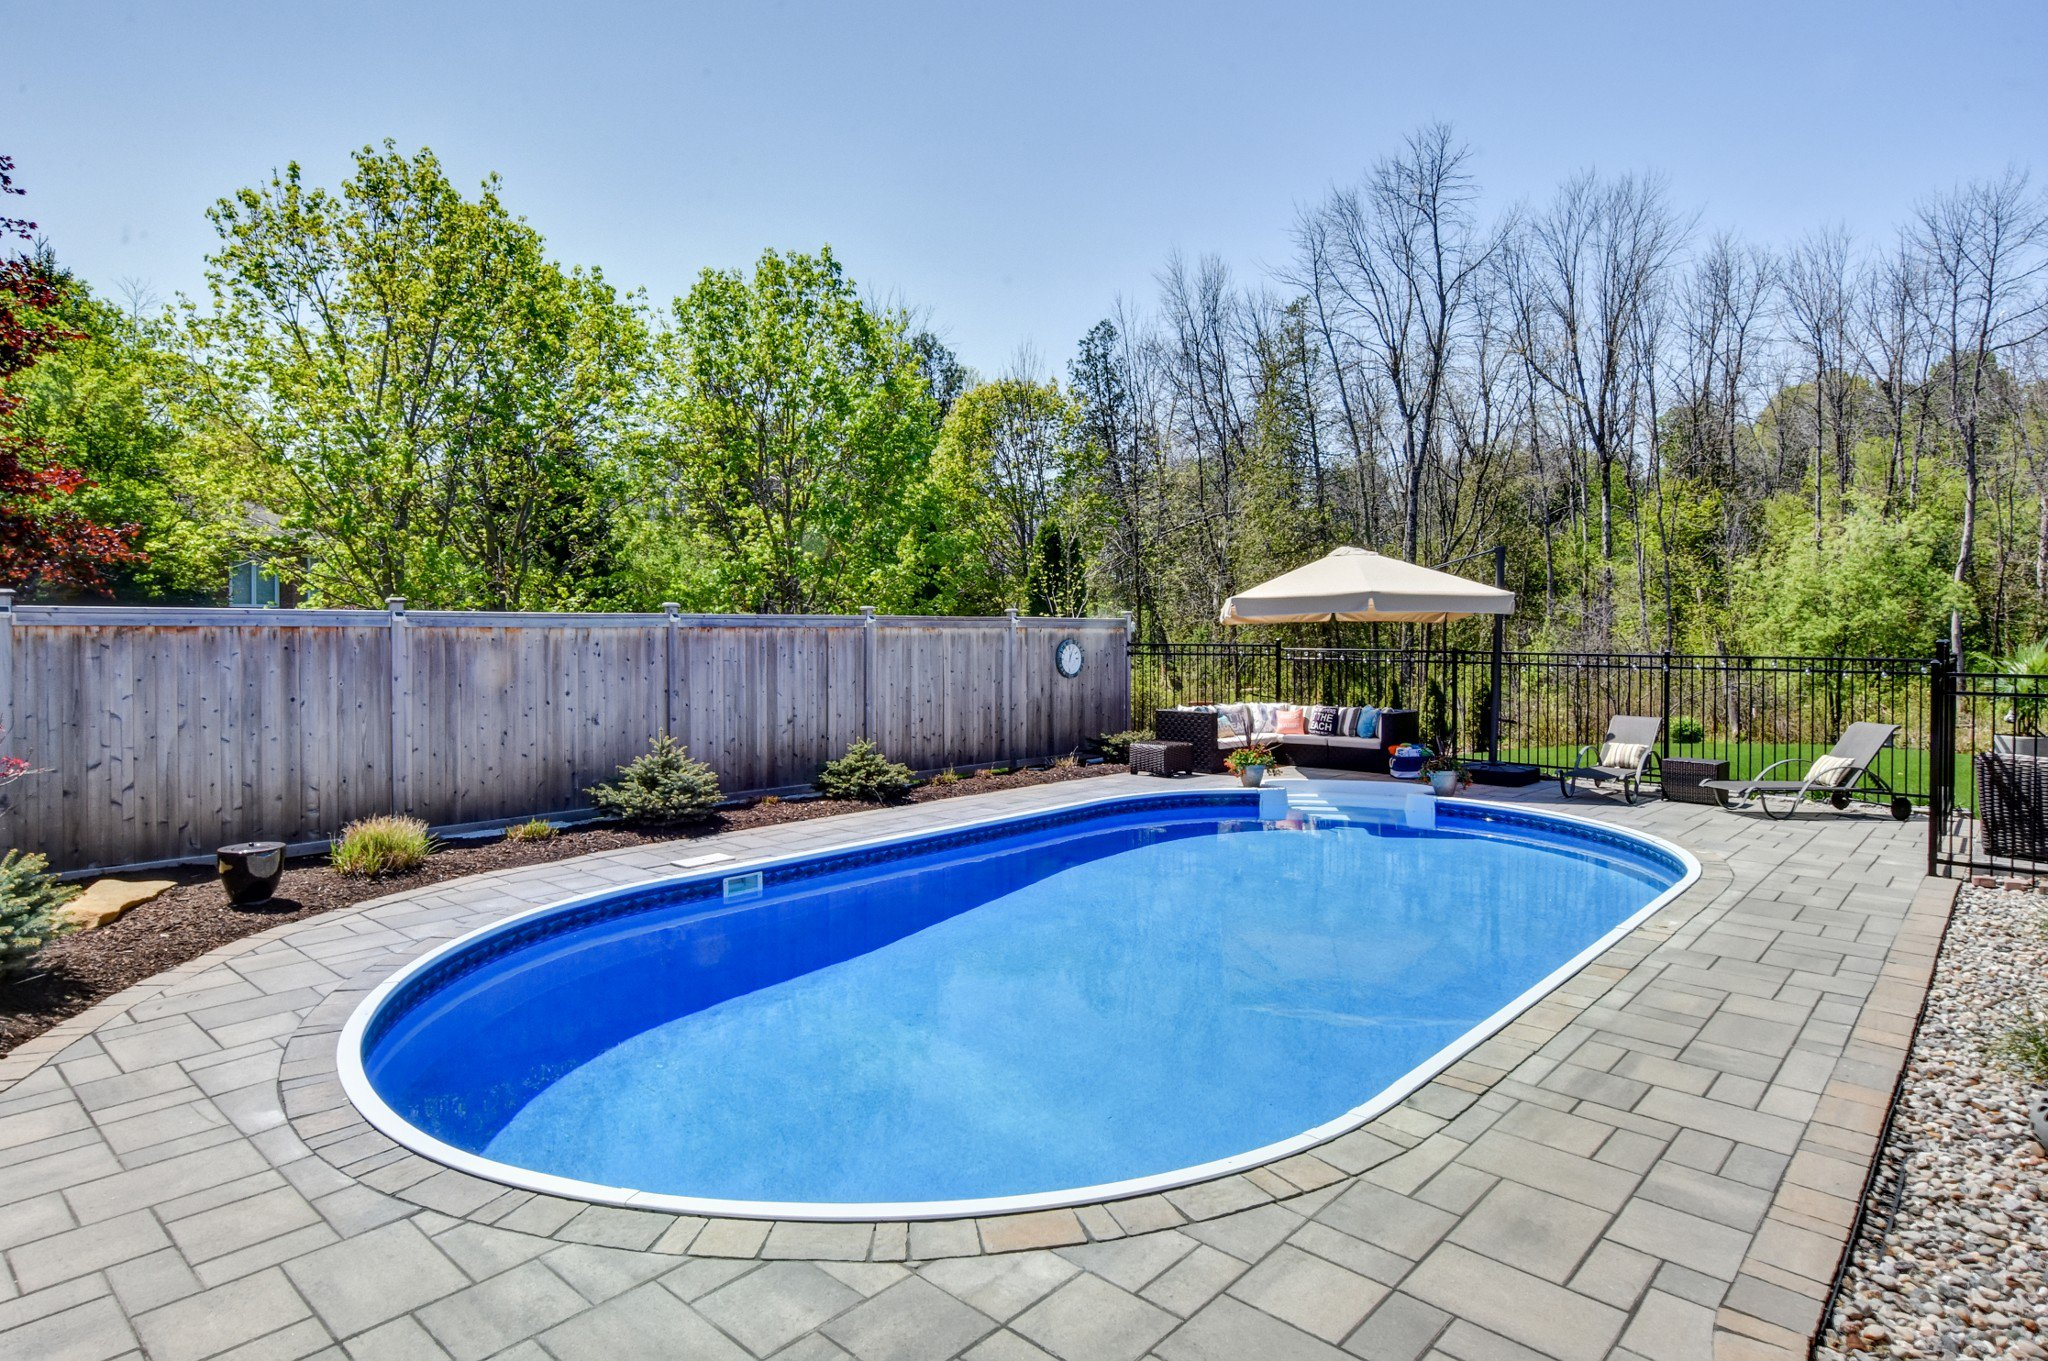 Photo 59: Photos: 1490 REINDEER WAY.: Greely House for sale (Ottawa)  : MLS®# 1109530